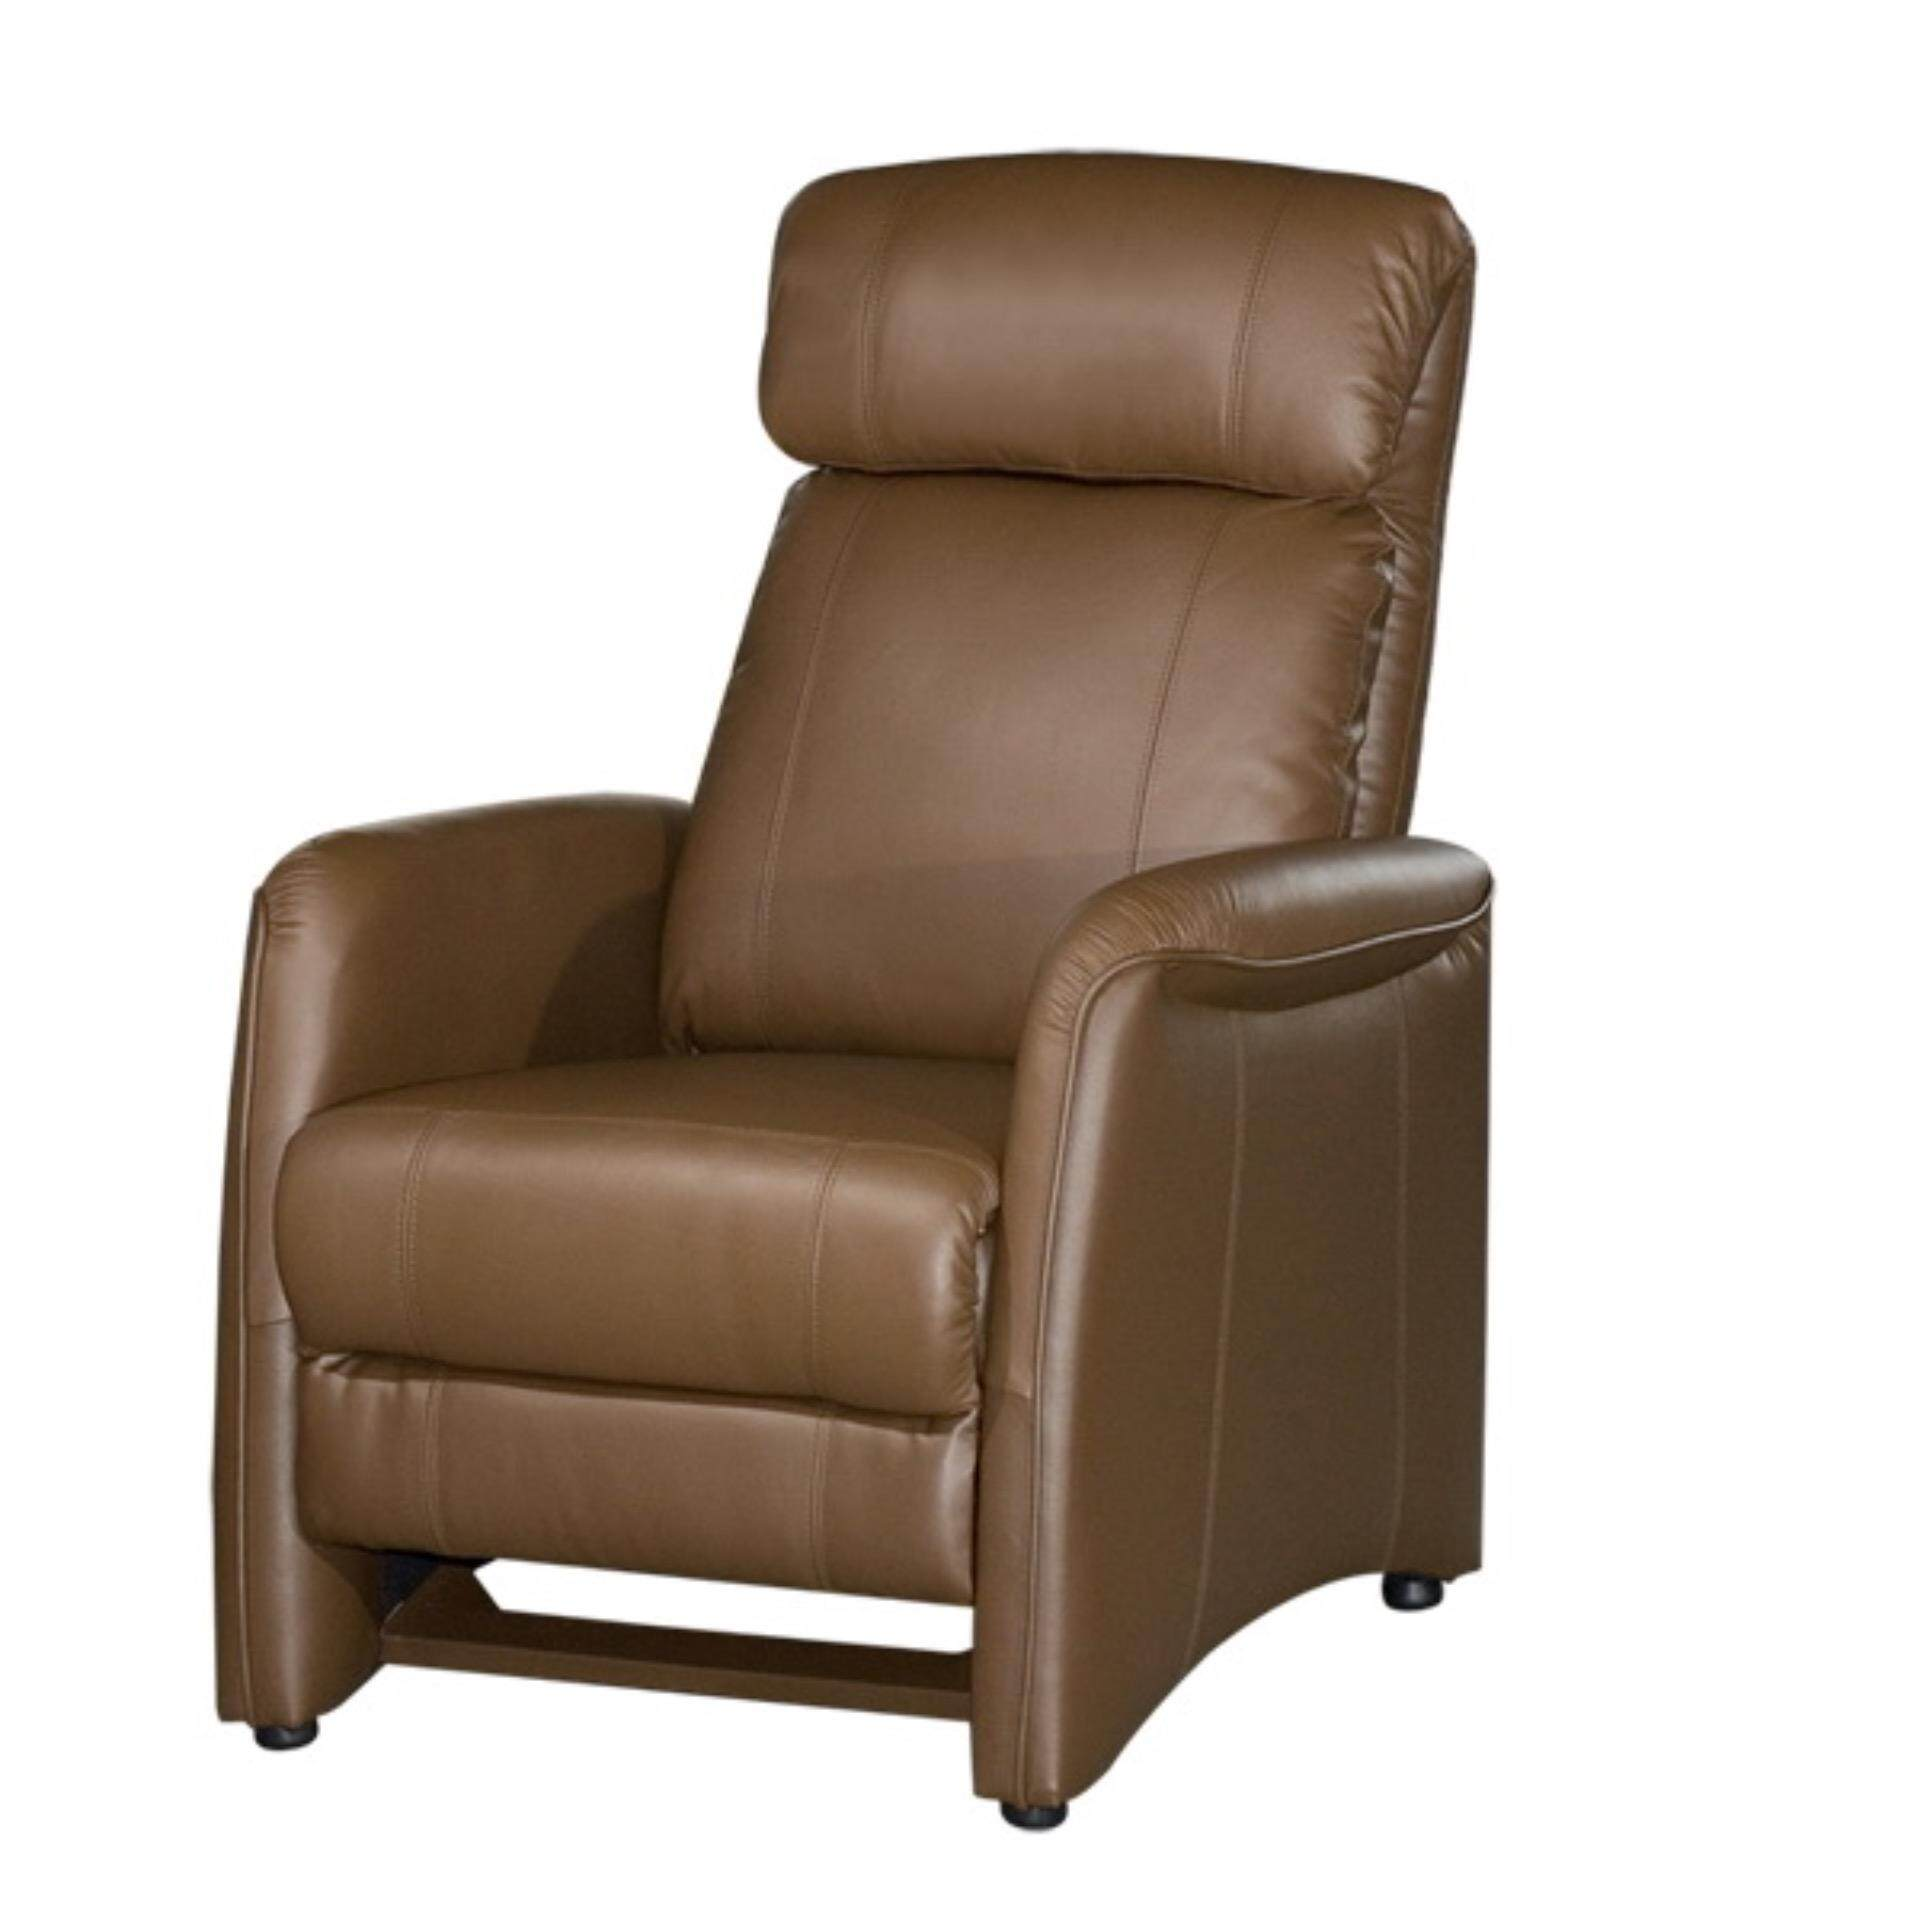 Fully Leather Push-Back Recliner Single Seater (5 Years Warranty)